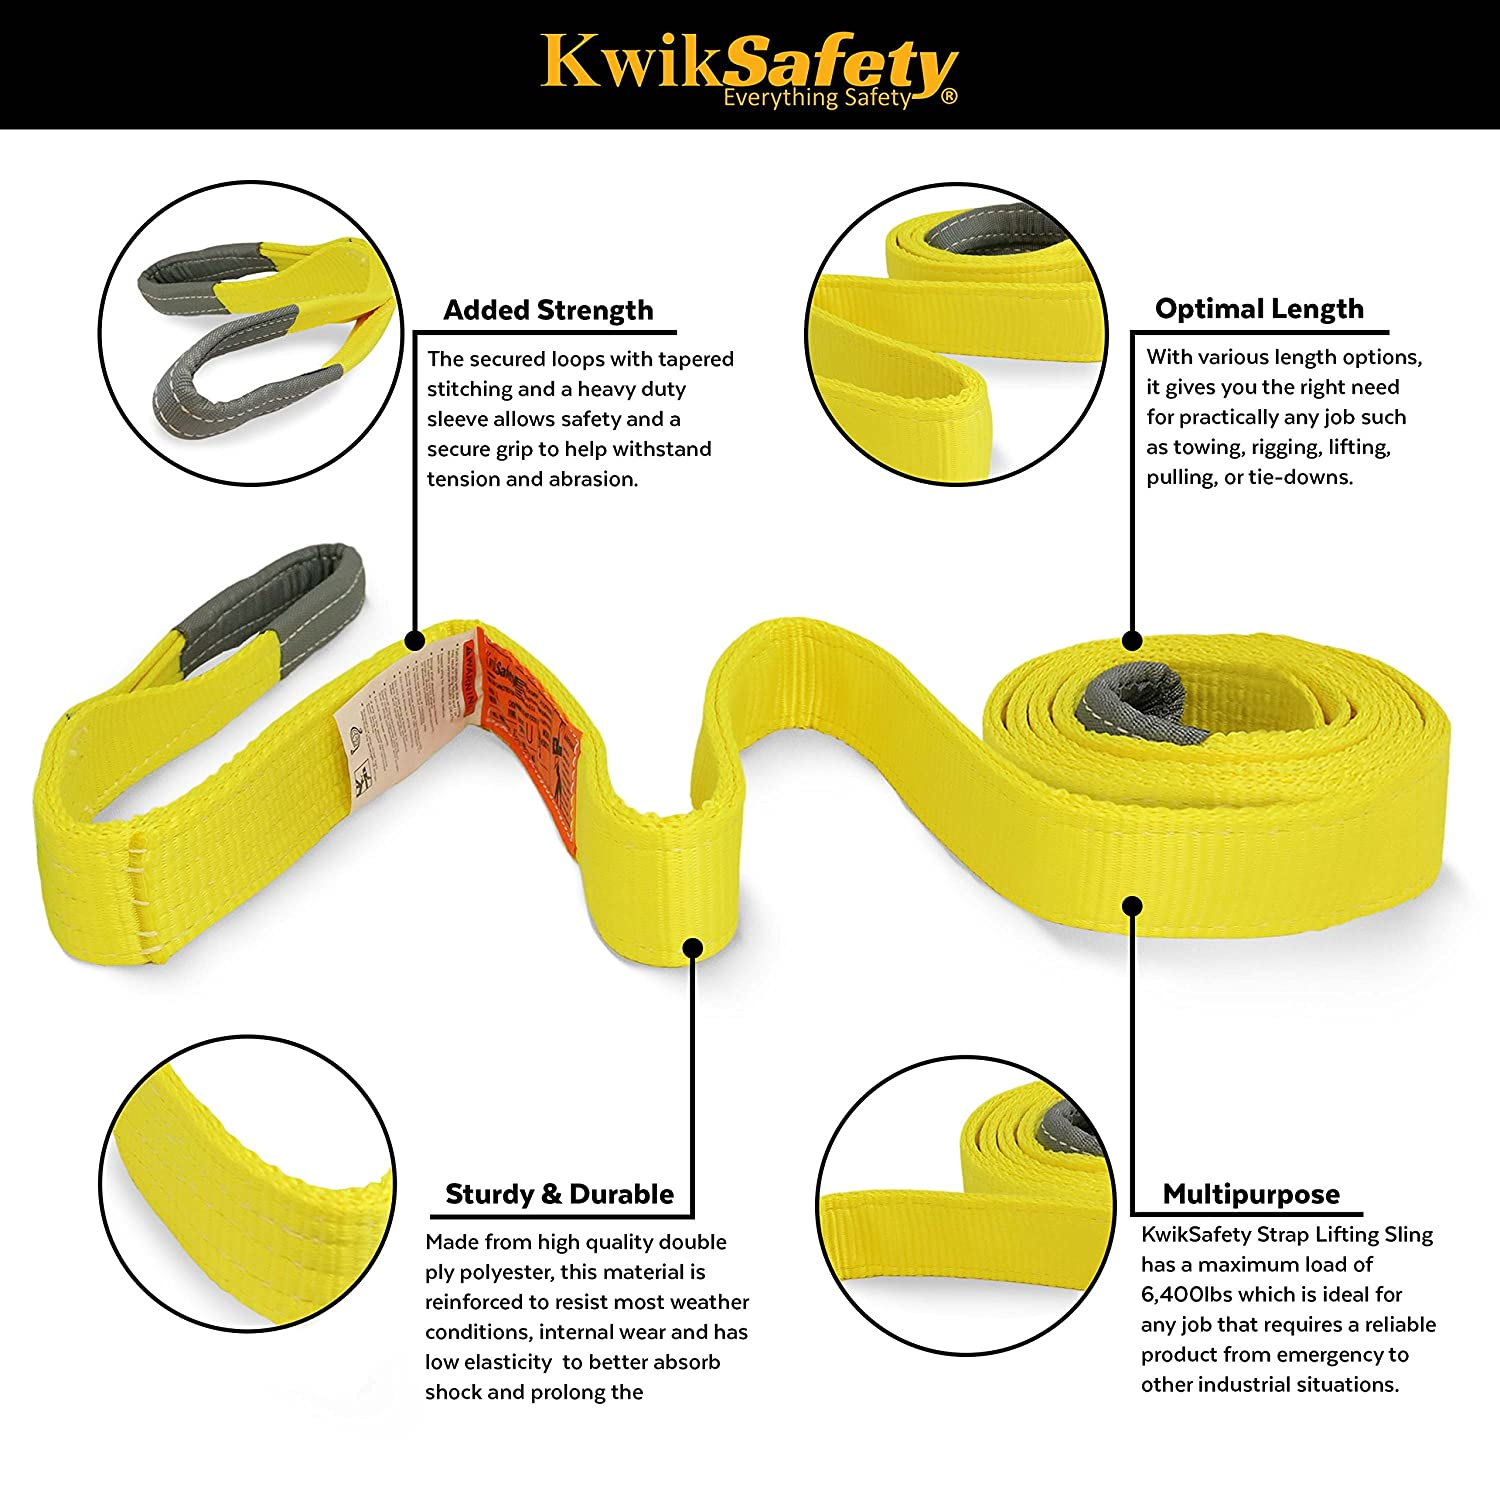 """3200lbs Vertical 2550lbs Choker 6400lbs Basket Load Lifting Rigging Towing Recovery Strap Charlotte, NC MIGHTY SUMO 1/""""x30/' Industrial Web Sling ASME Certified 2 Ply Eye-Eye Webbing KwikSafety"""